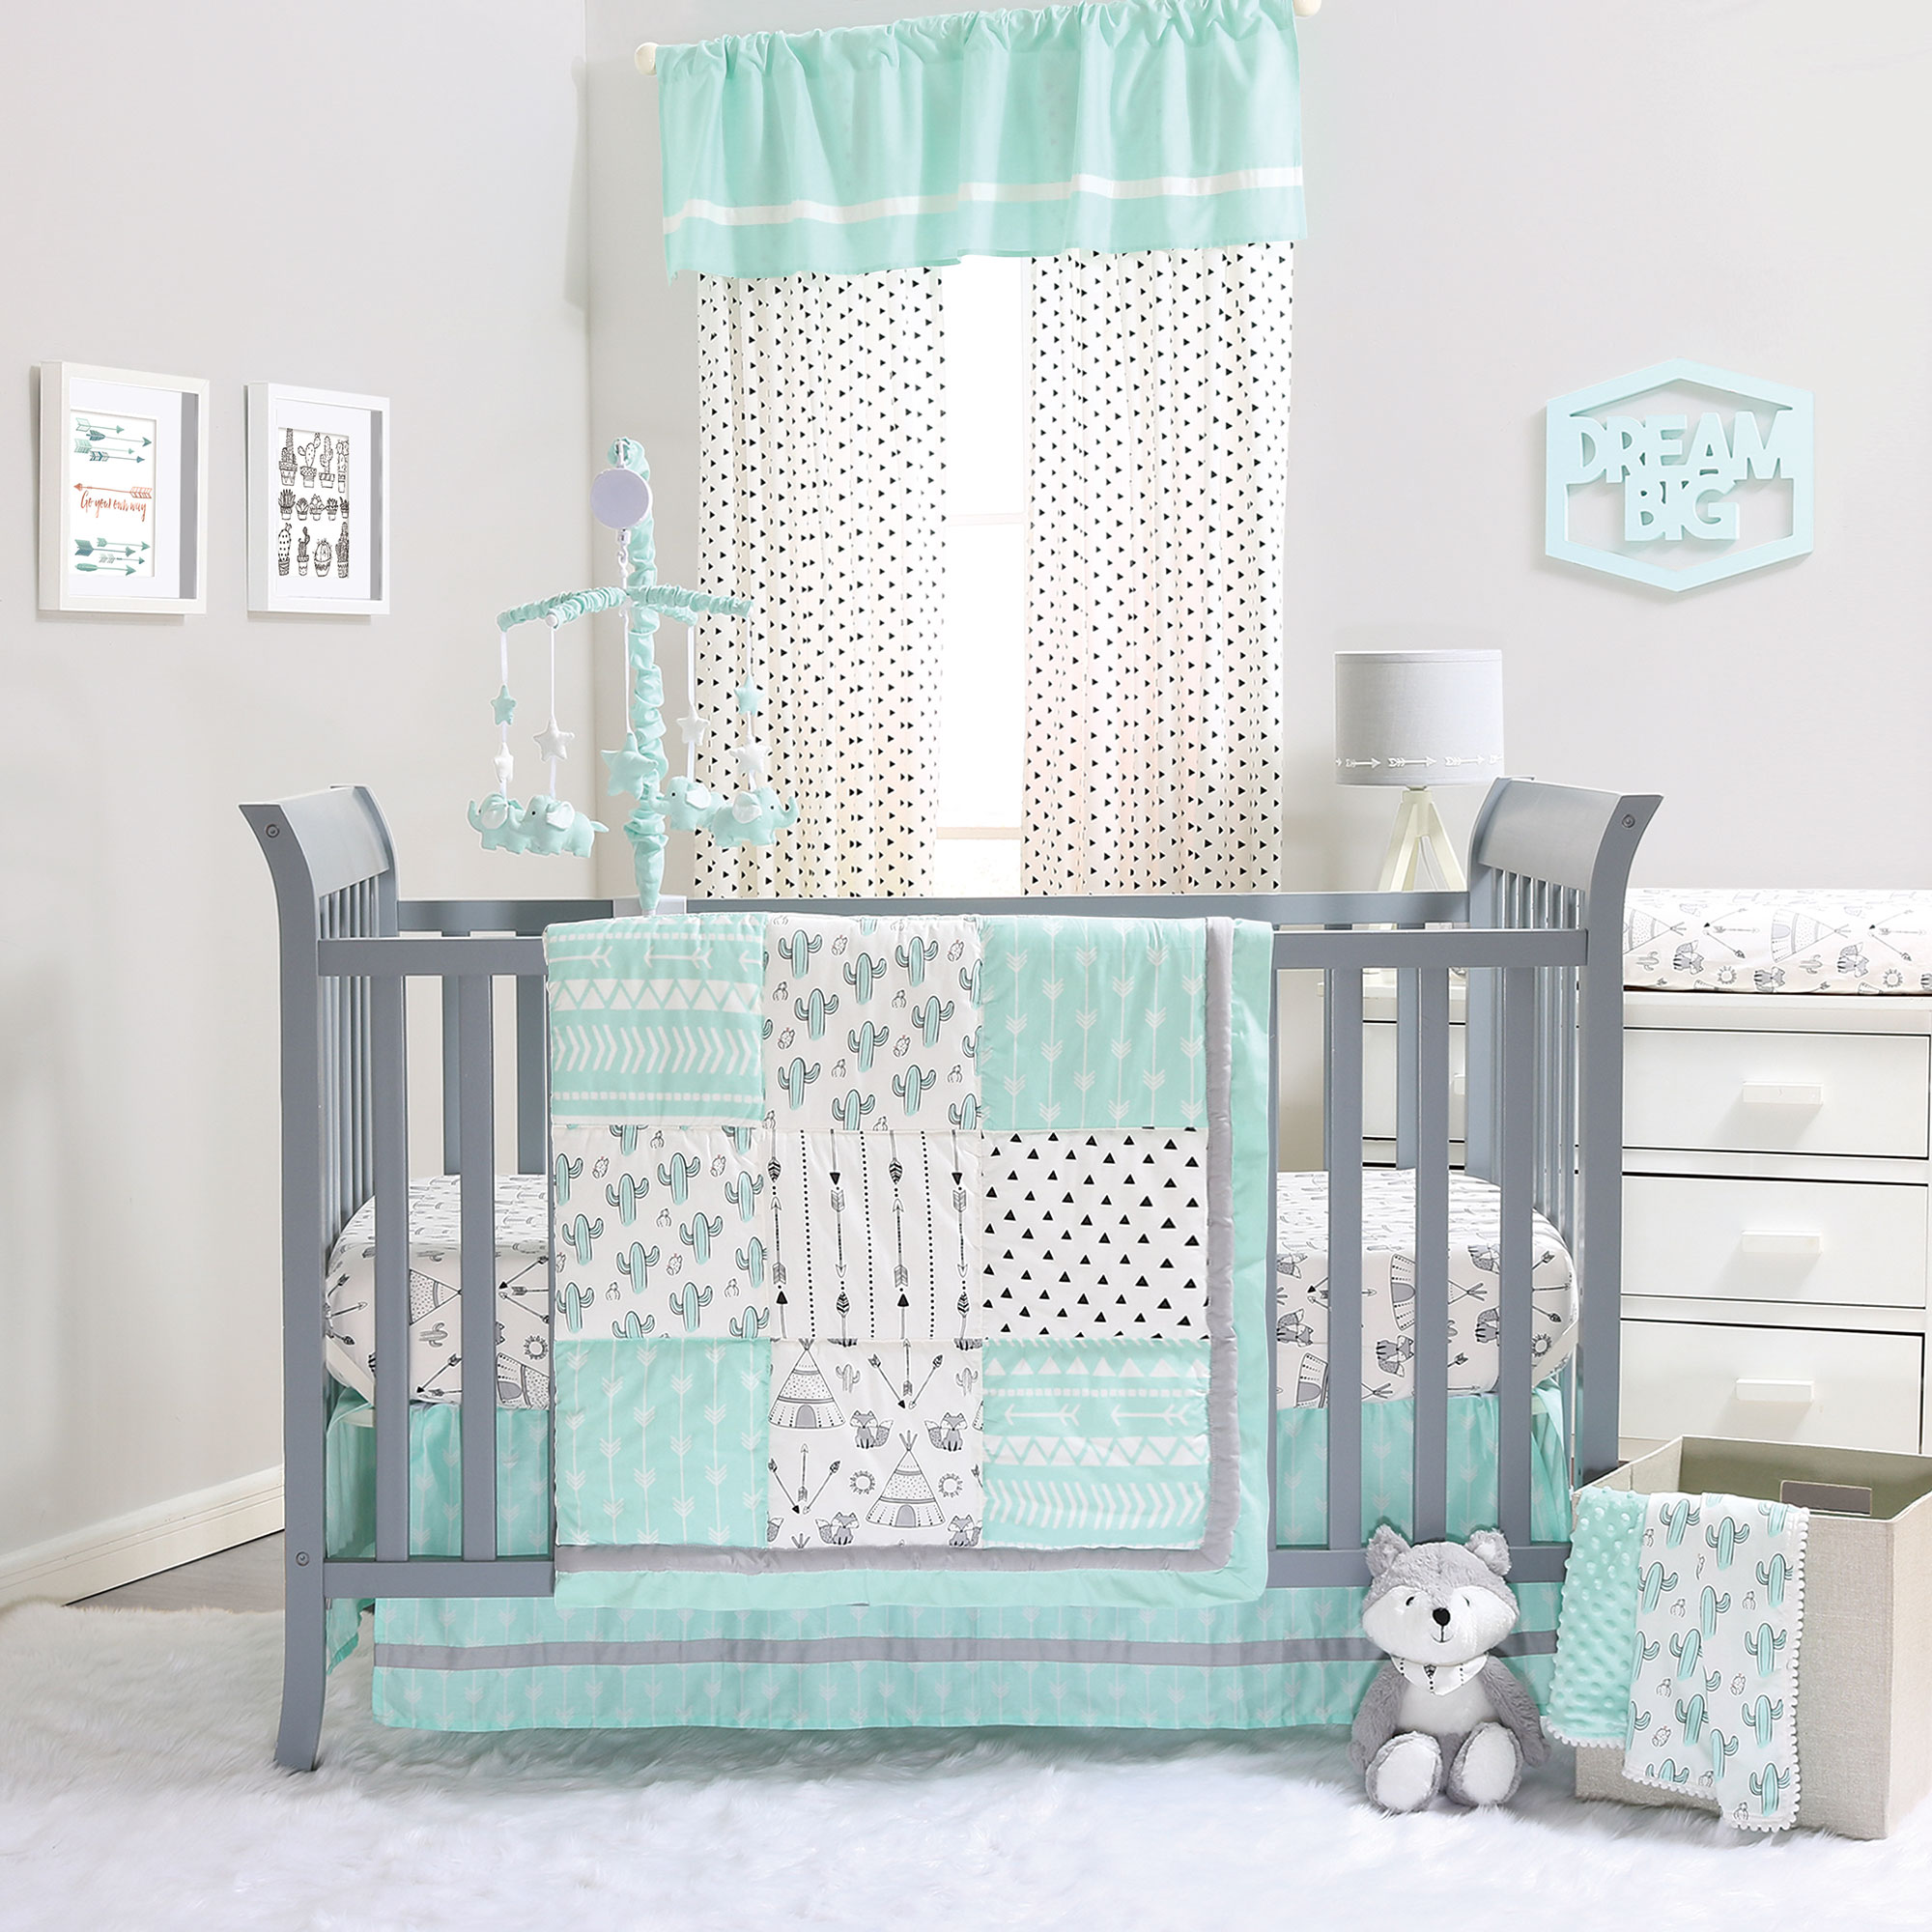 Mint Green Southwest Cactus Patchwork 3 Piece Crib Bedding Set by The Peanut Shell